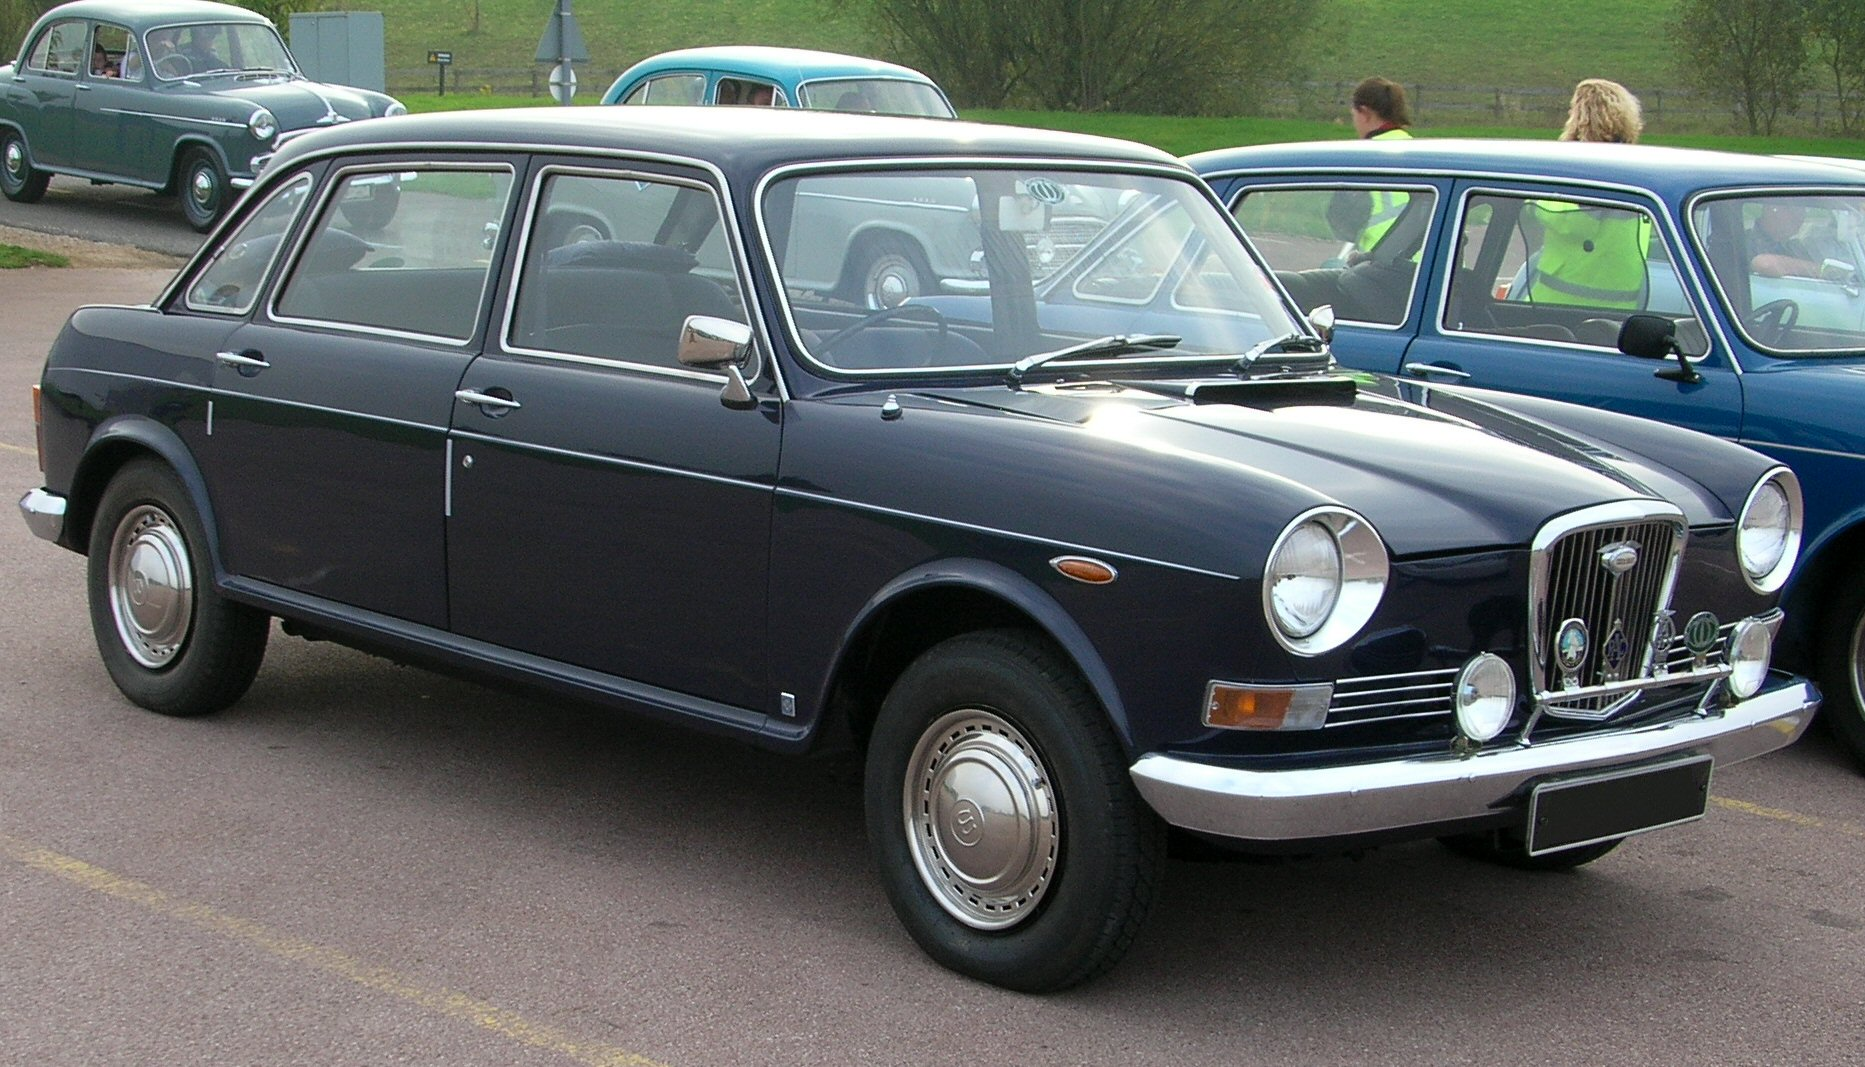 http://upload.wikimedia.org/wikipedia/commons/d/d2/Wolseley_Six_Automatic_1972.jpg